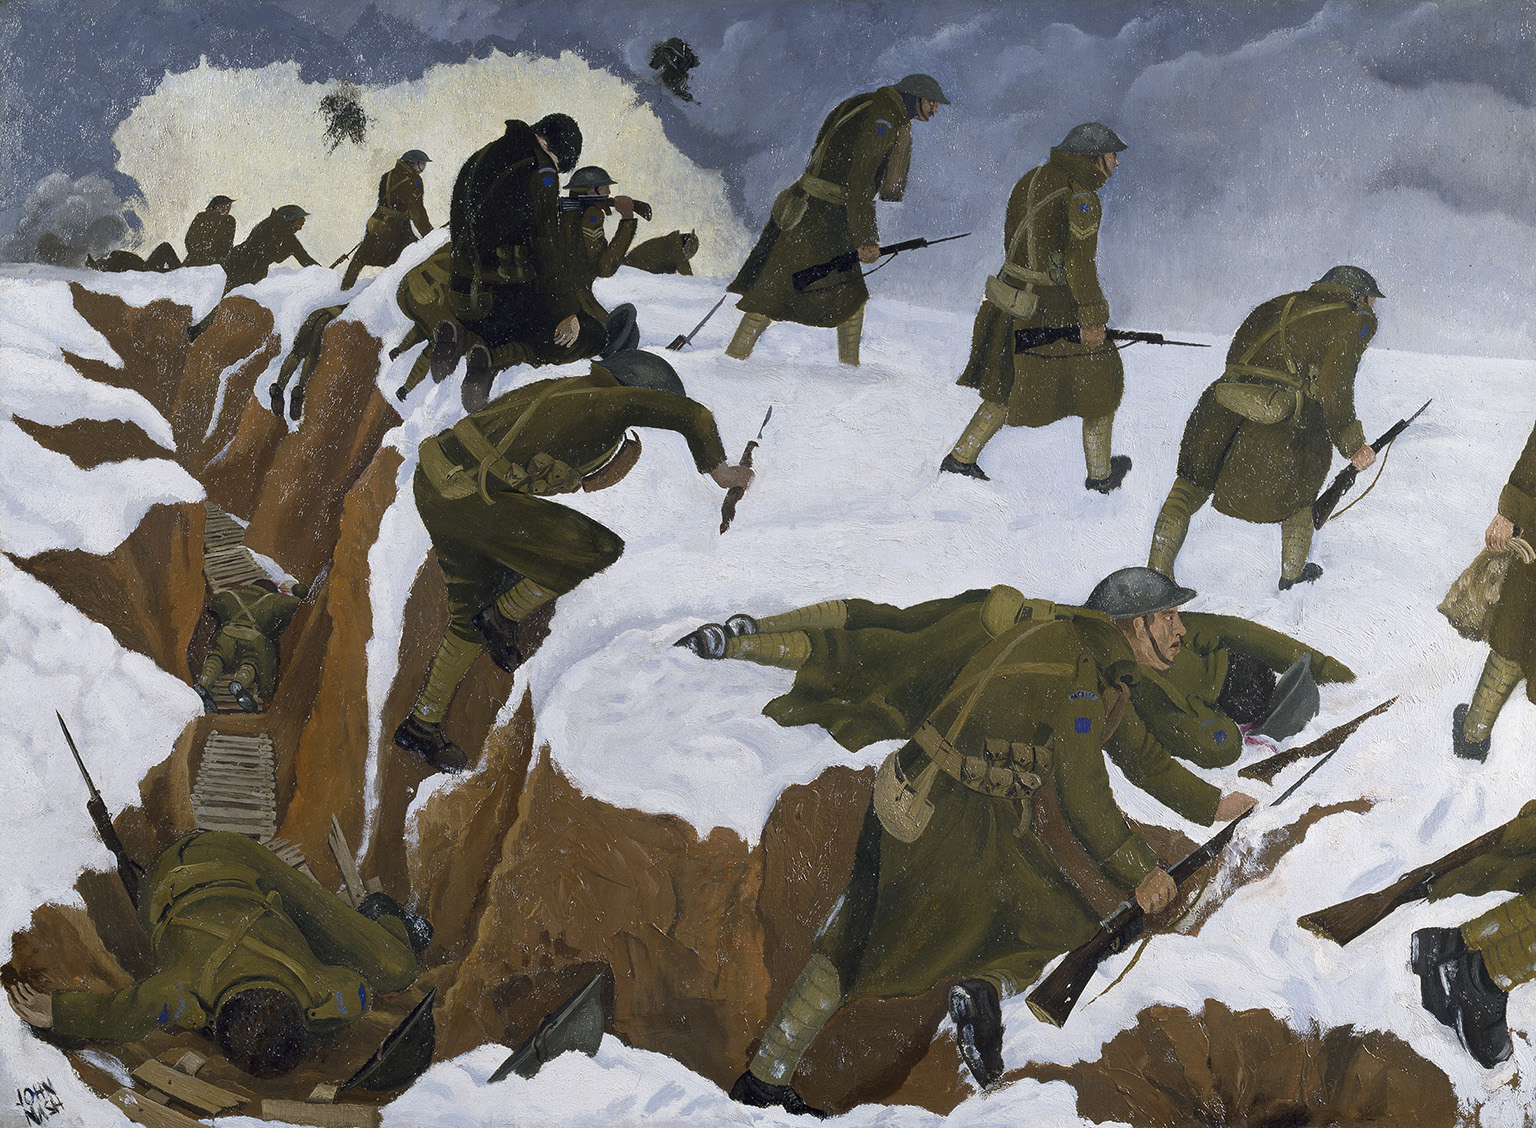 John Nash, 'Over the Top' 1st Artists Rifles at Marcoing, 30th December 1917, 1918. Oil on Canvas.